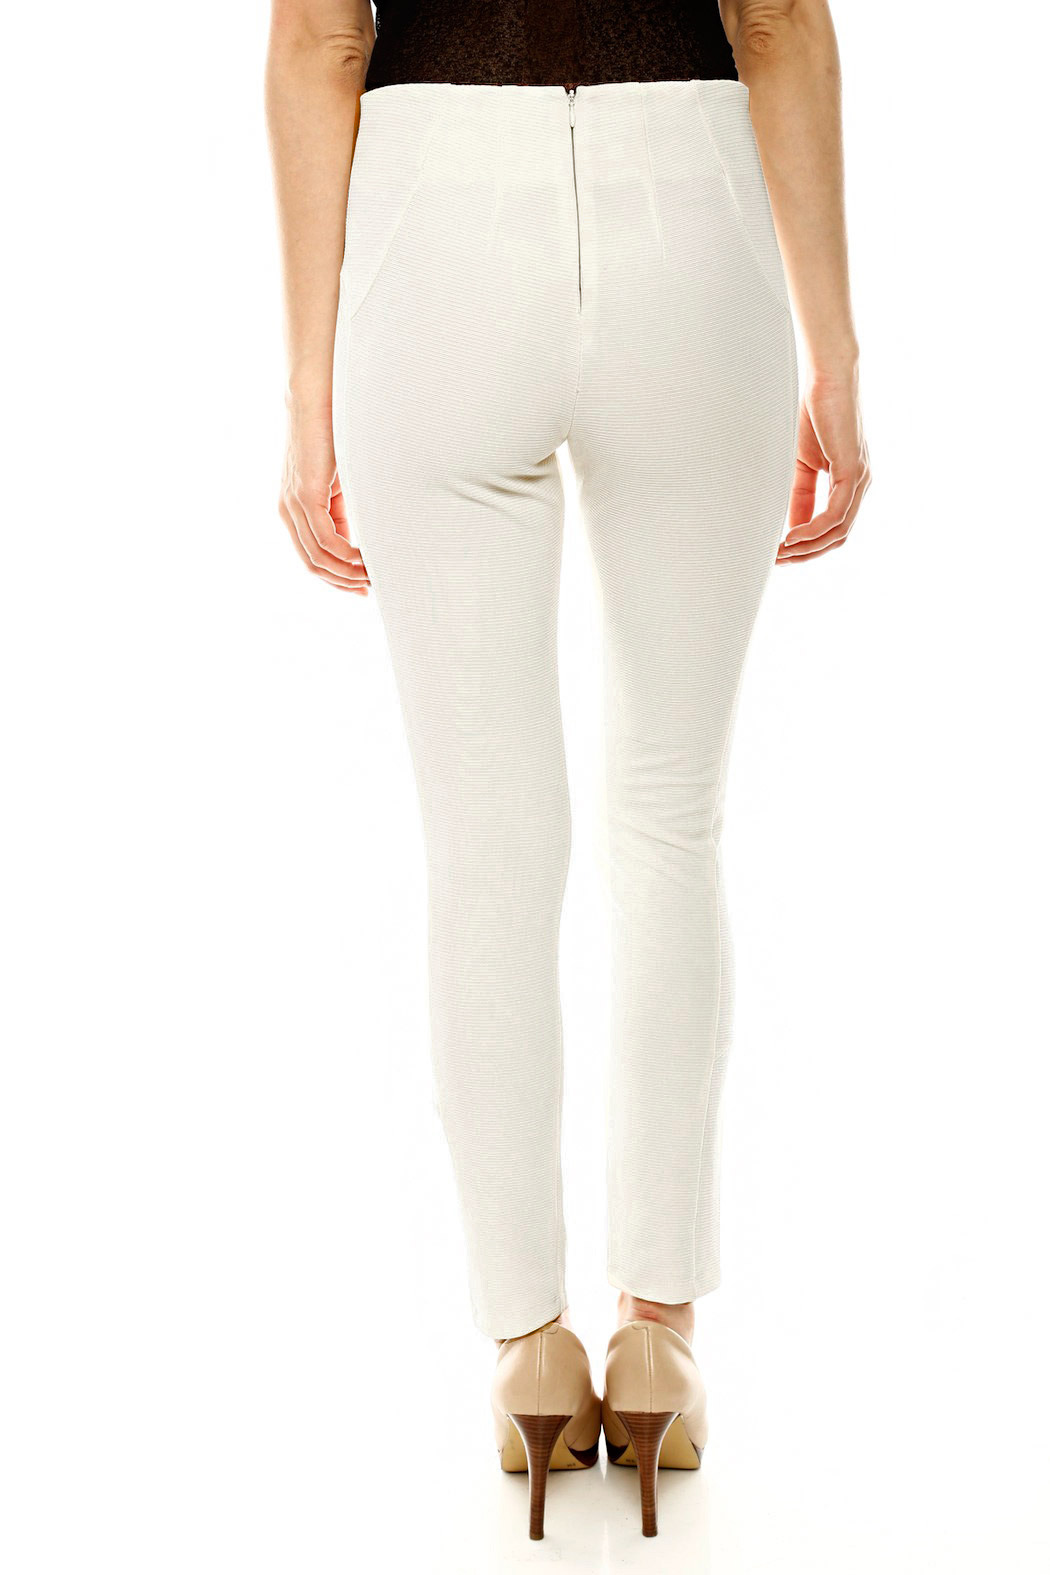 Gracia Ribbed Riding Pant - Back Cropped Image